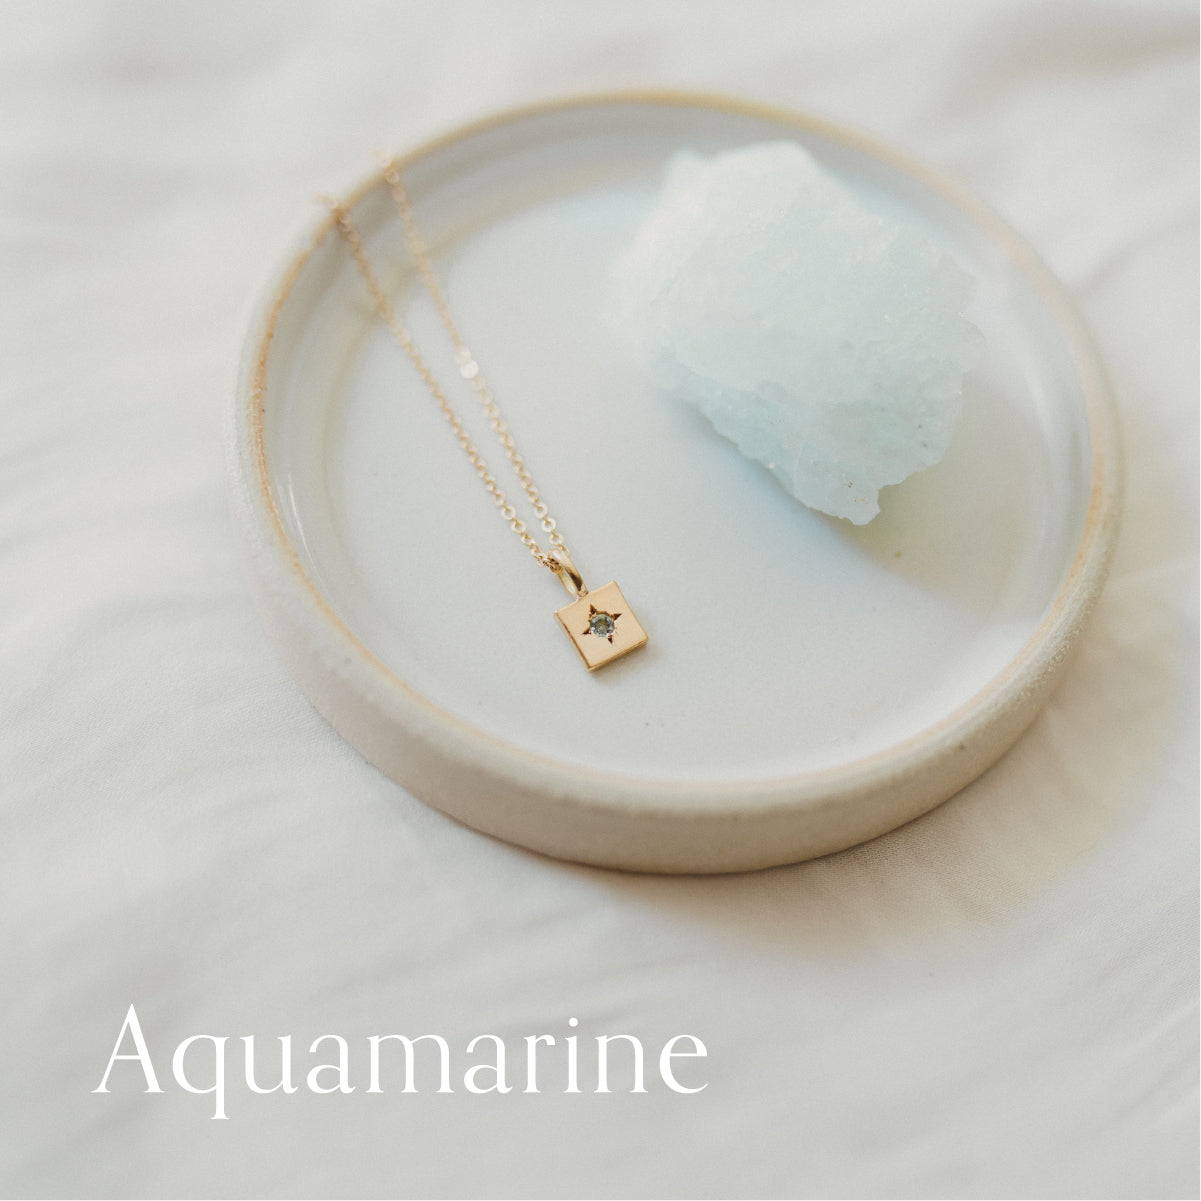 Aquamarine gemstone forecast